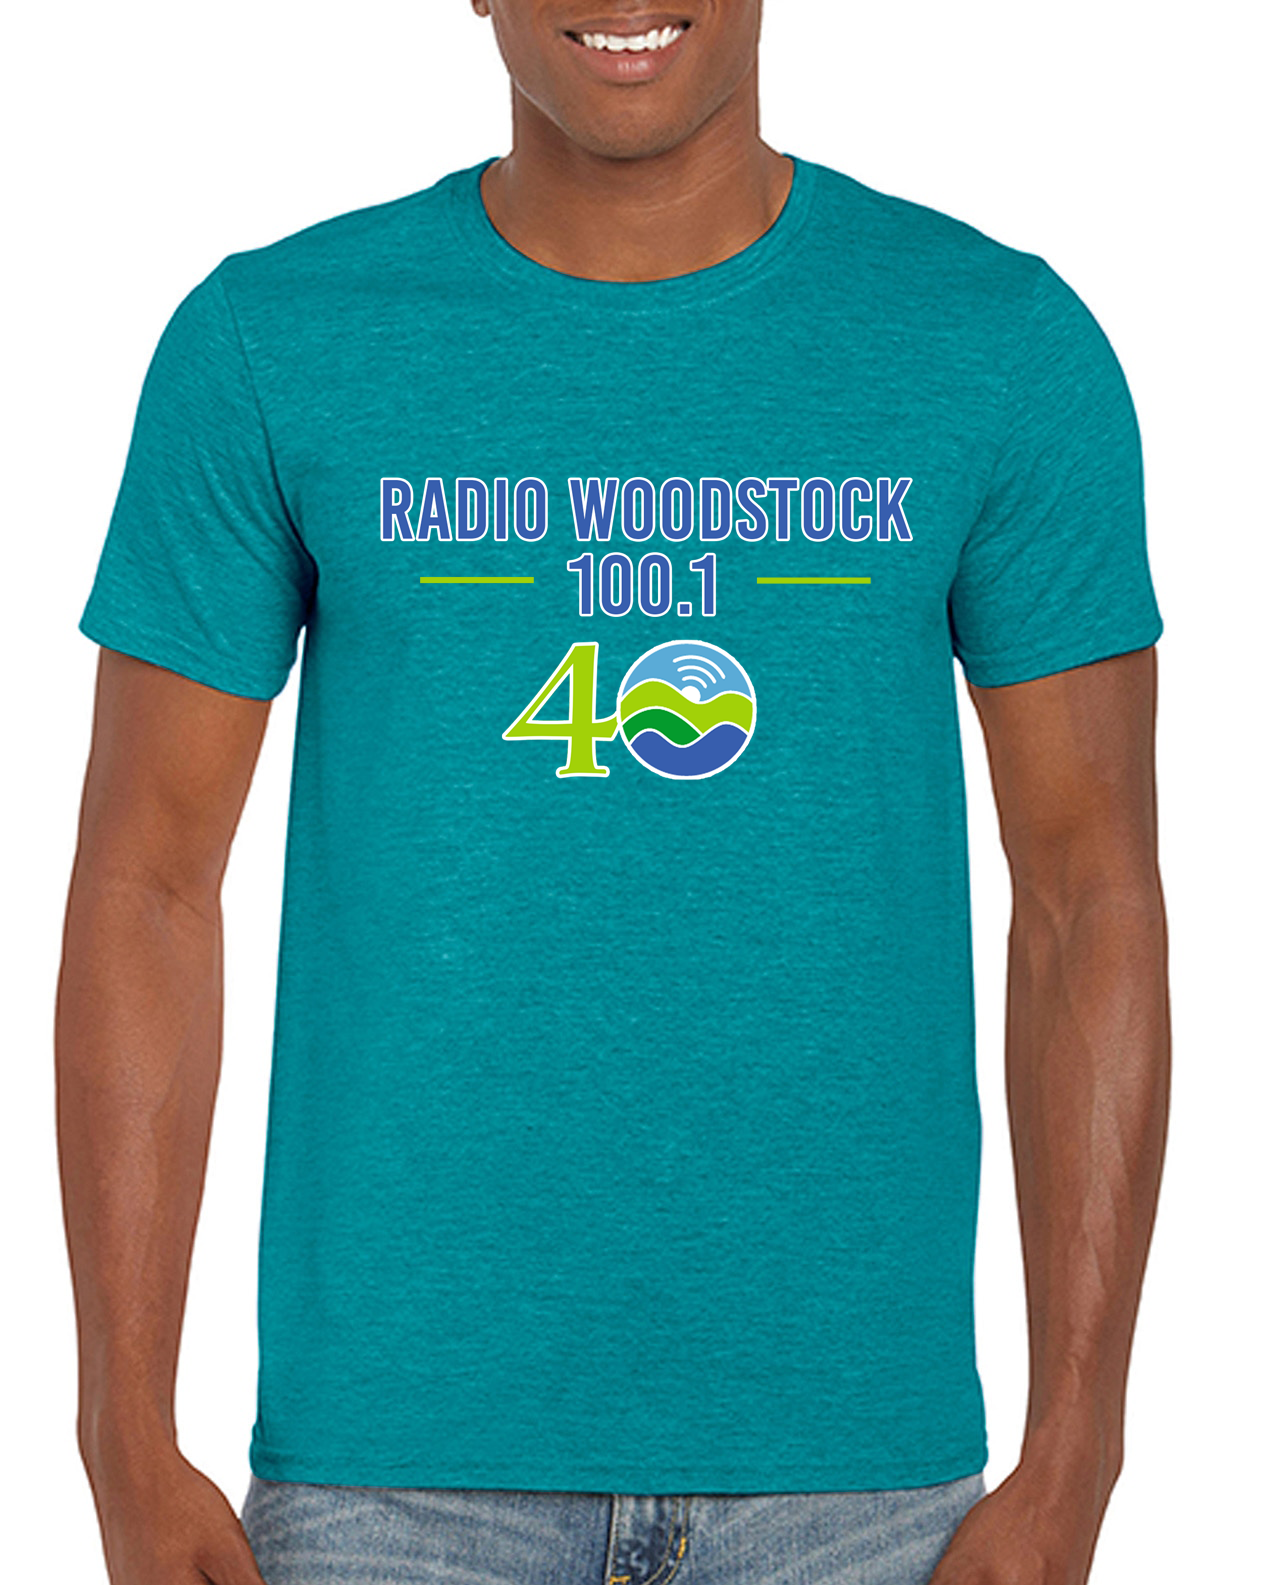 Radio Woodstock 40th Anniversary Tee - Heather Galapagos Blue *** Limited Edition***